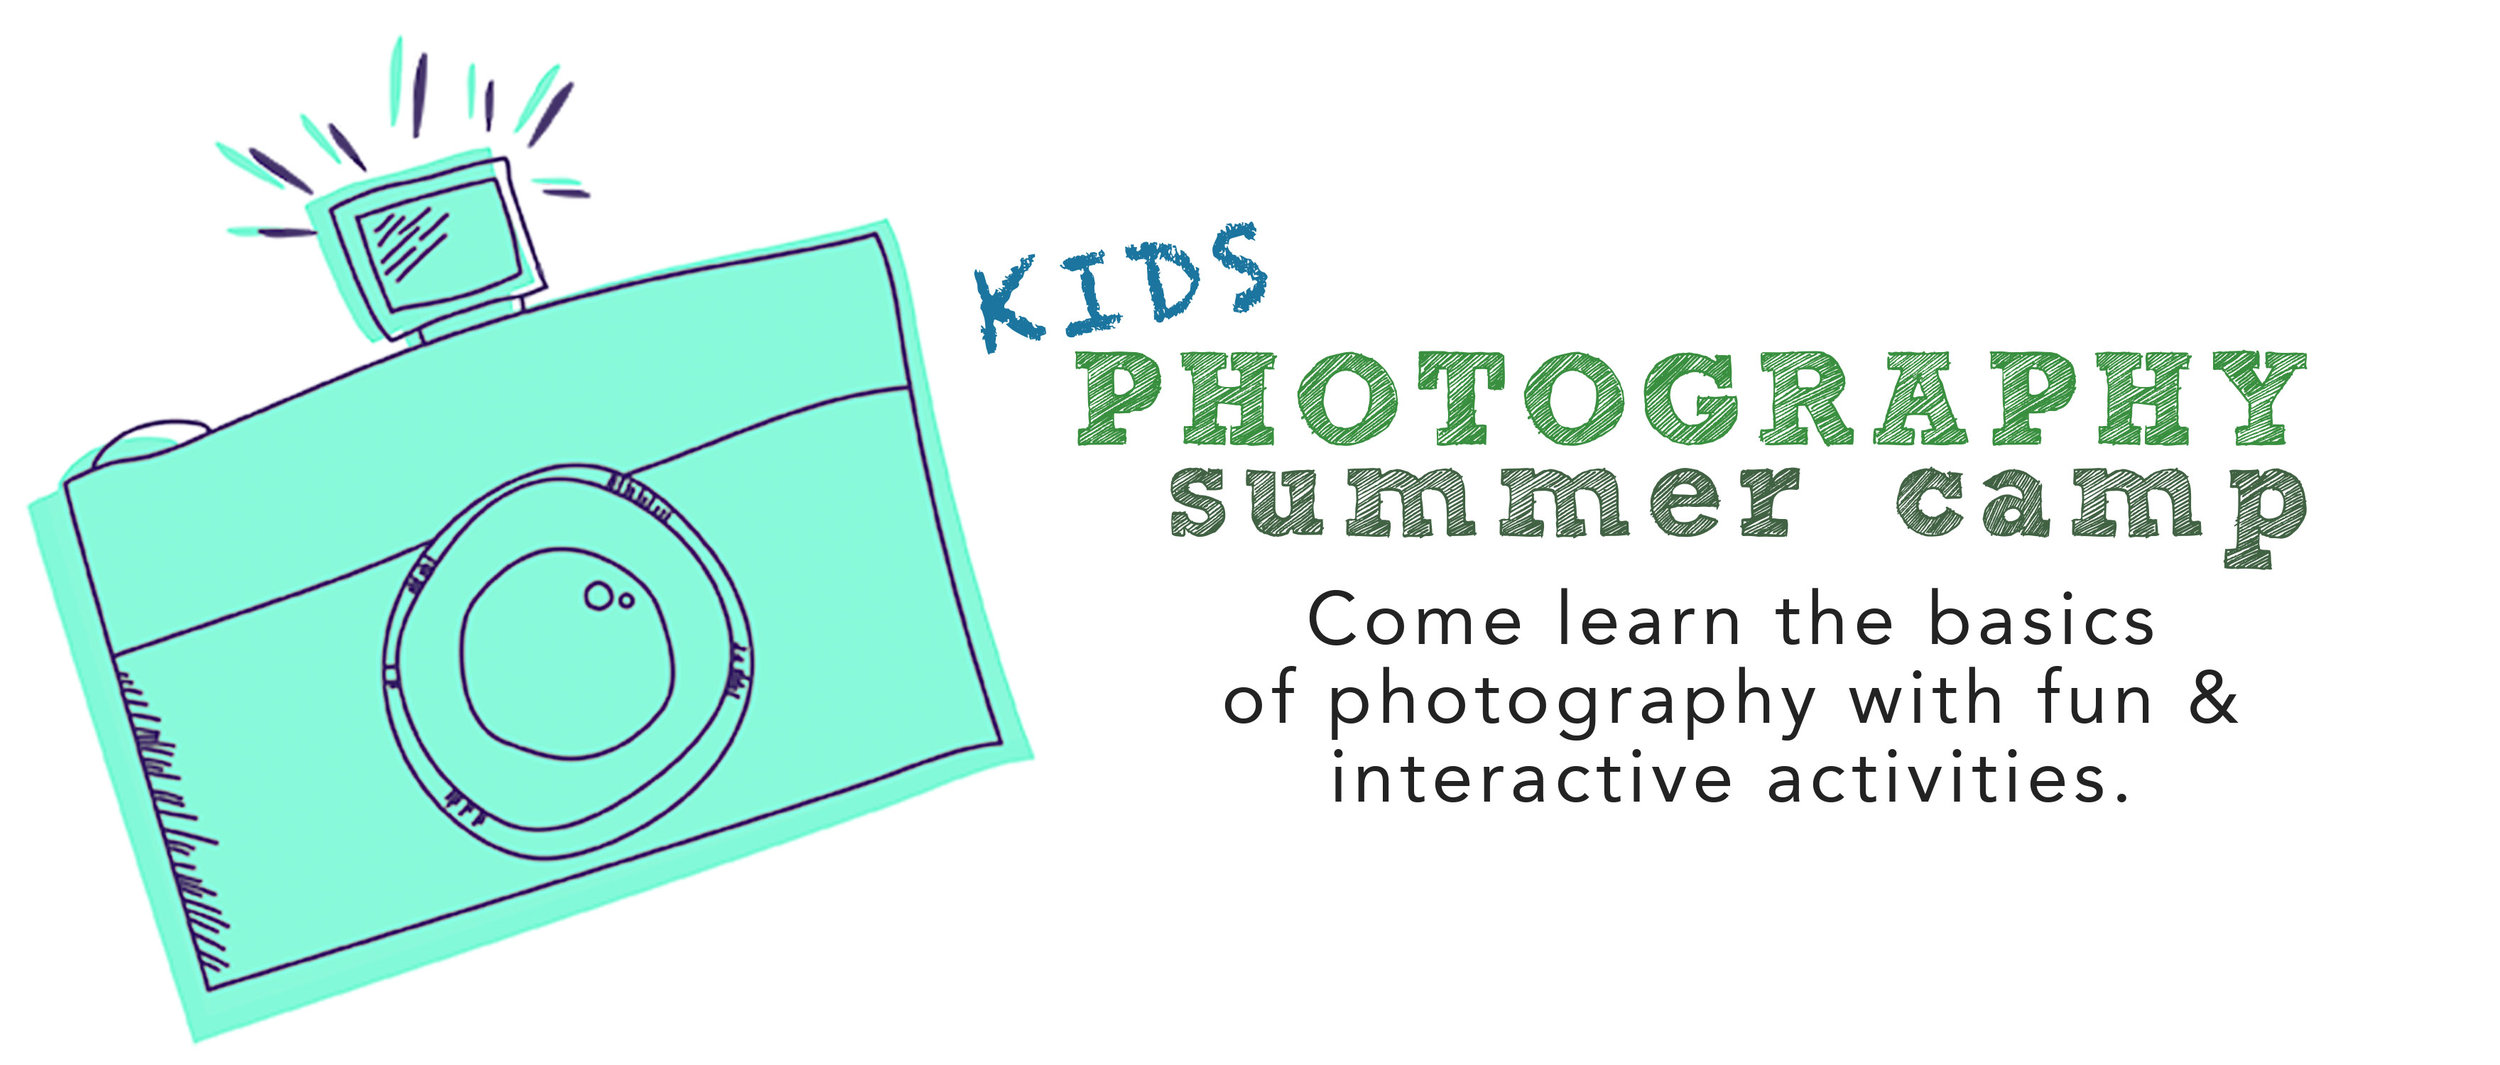 San Diego Summer Camp Photography Class for Kids